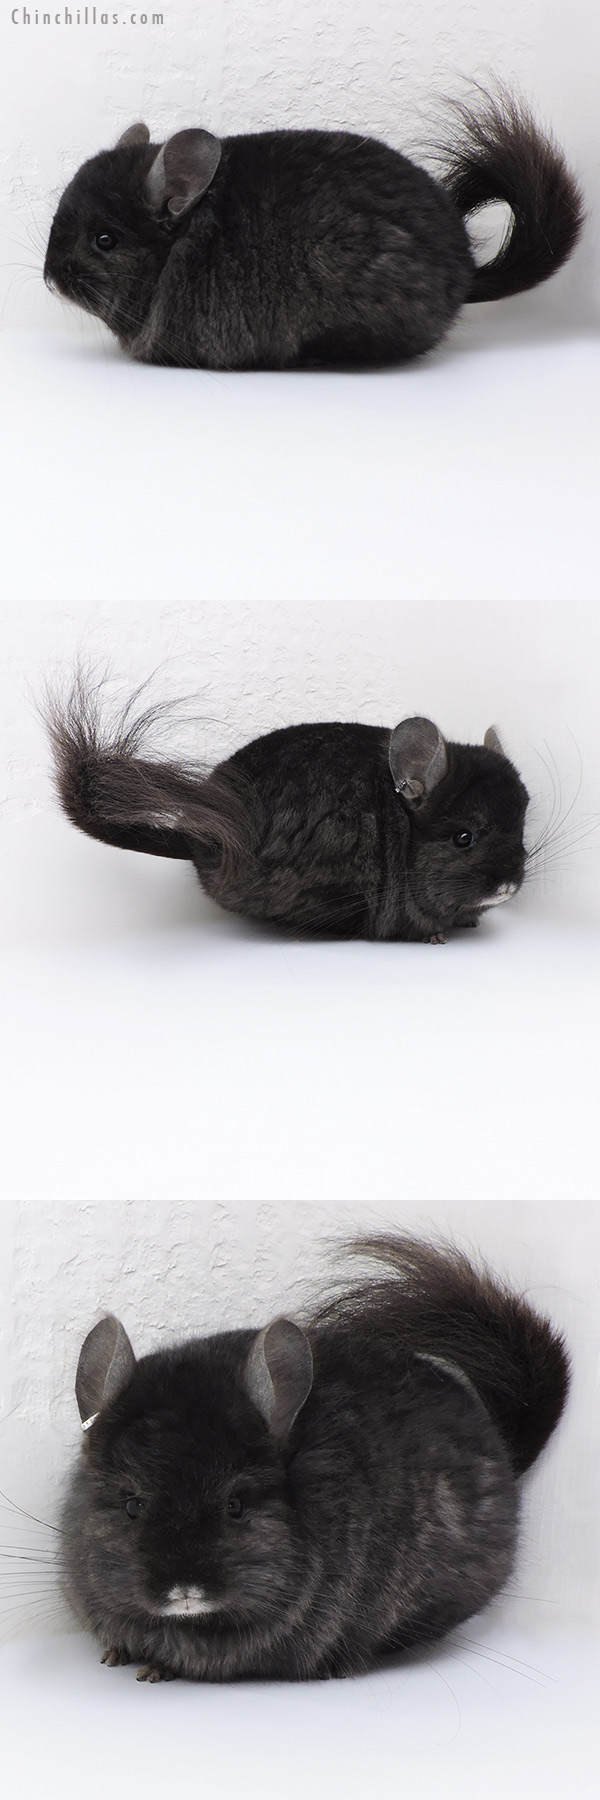 18011 Blocky Ebony CCCU Royal Persian Angora ( Locken Carrier ) Male Chinchilla